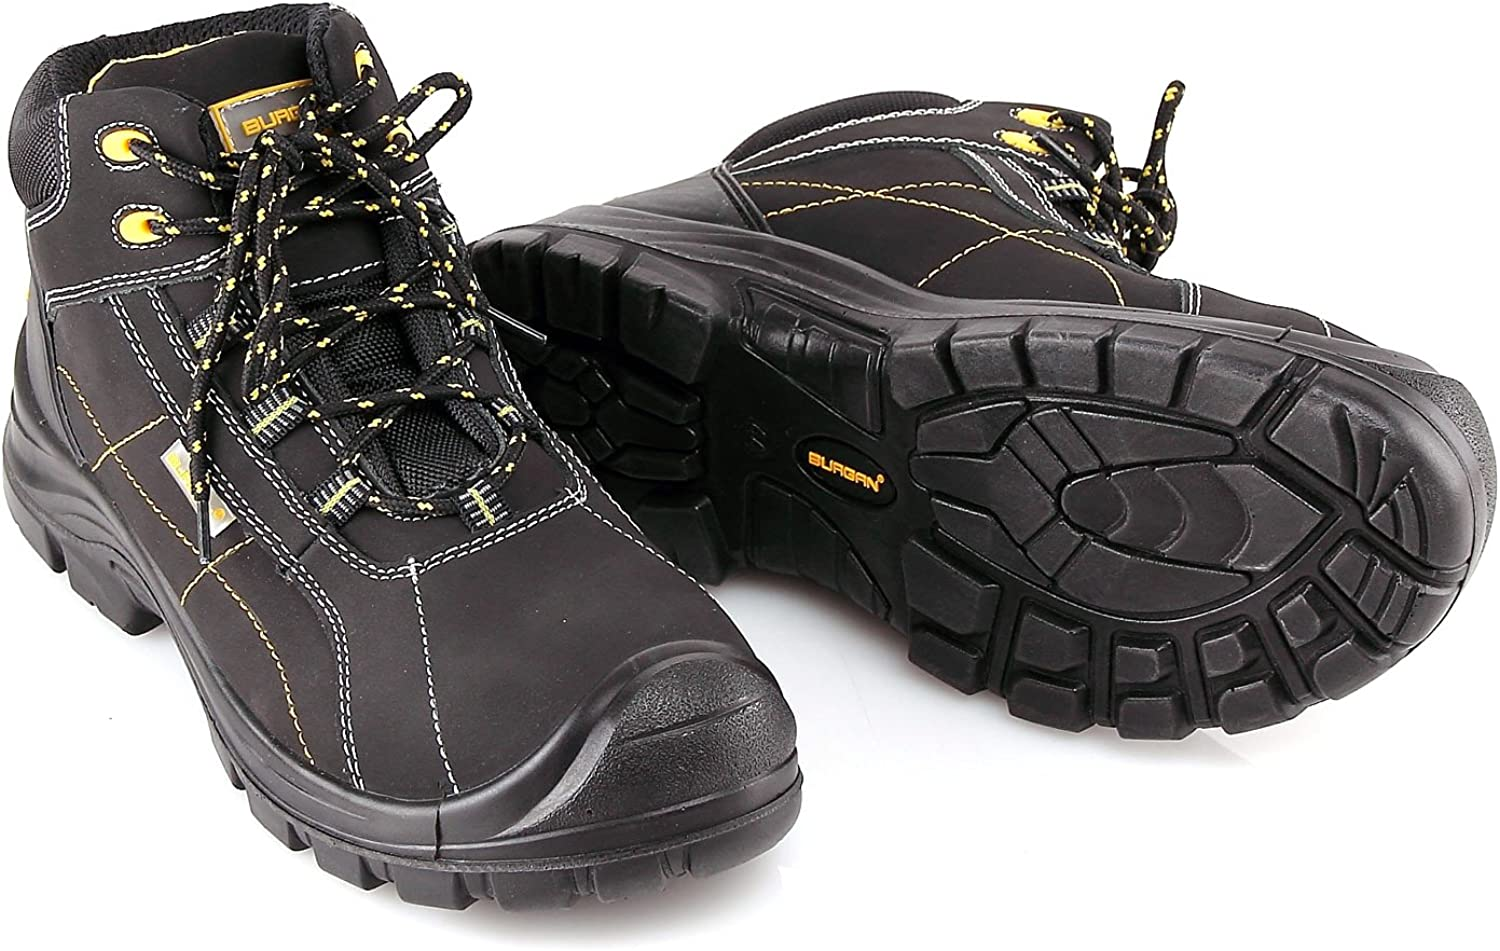 Amazon.com: Burgan 290 anti-penetration compuesto de botas ...